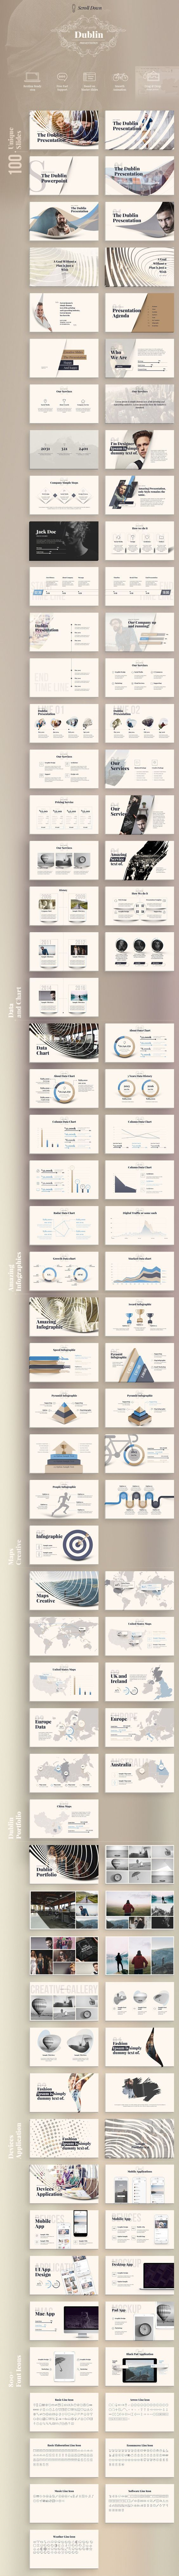 Dublin Powerpoint Presentation by dublin_design on @creativemarket: